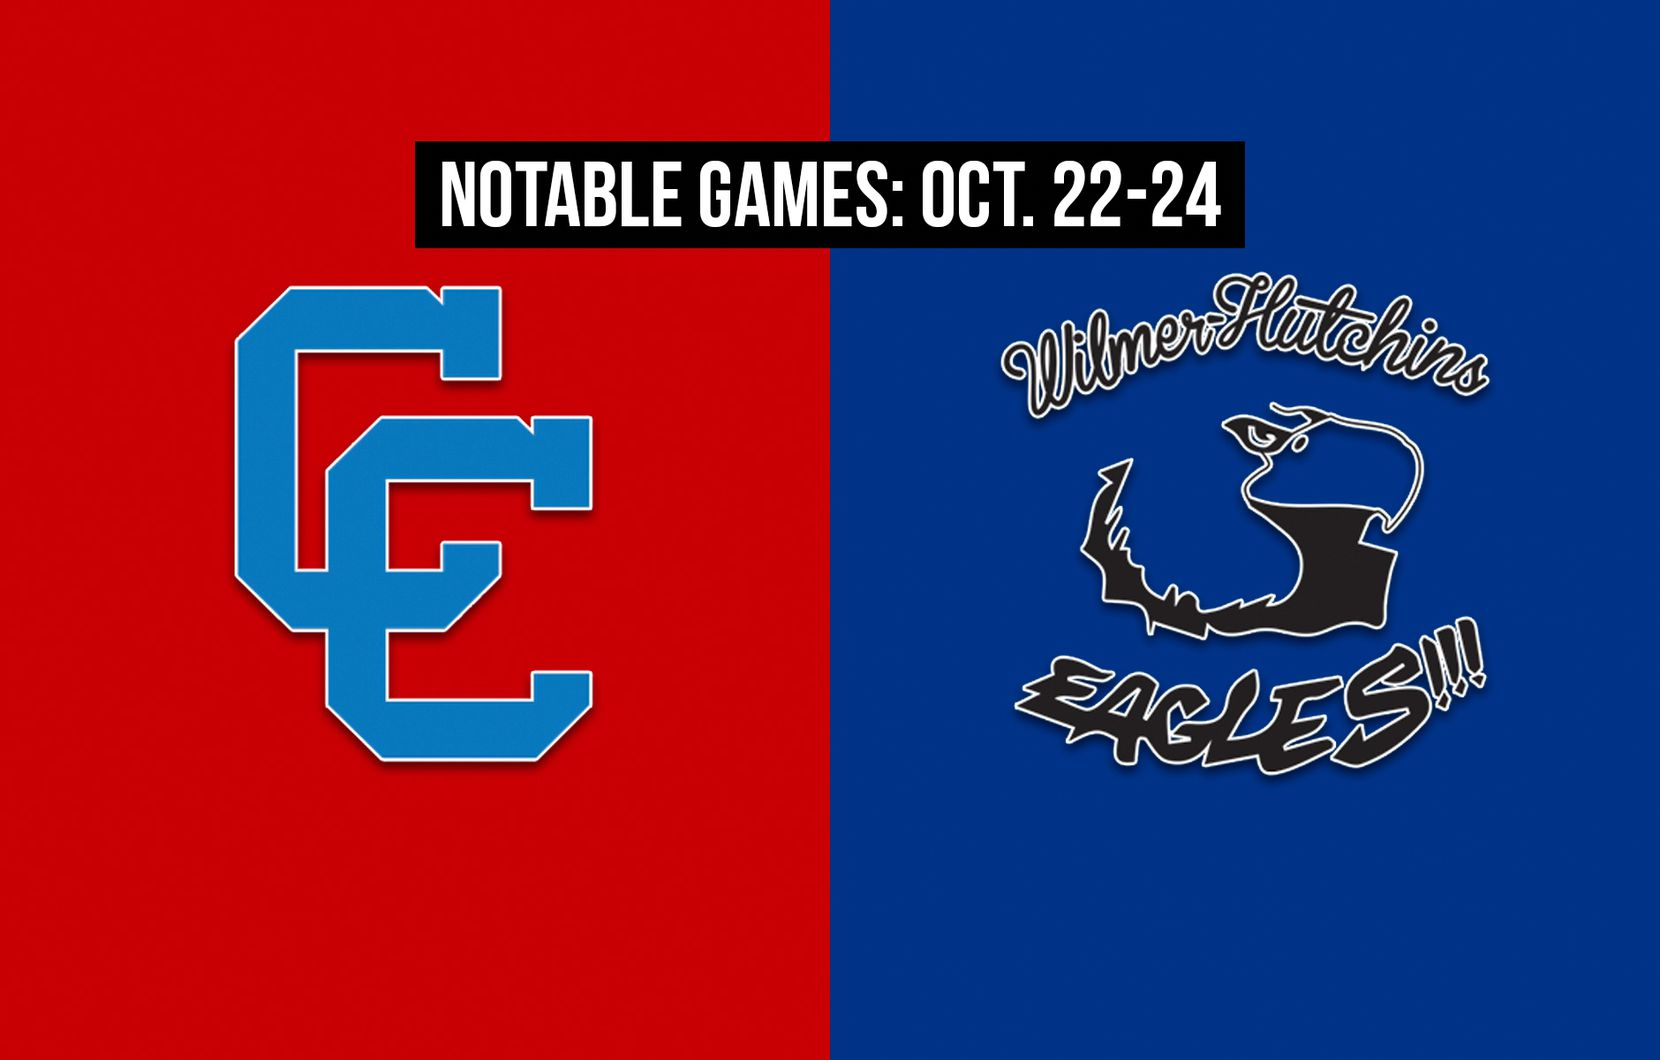 Notable games for the week of Oct. 22-24 of the 2020 season: Carter vs. Wilmer-Hutchins.